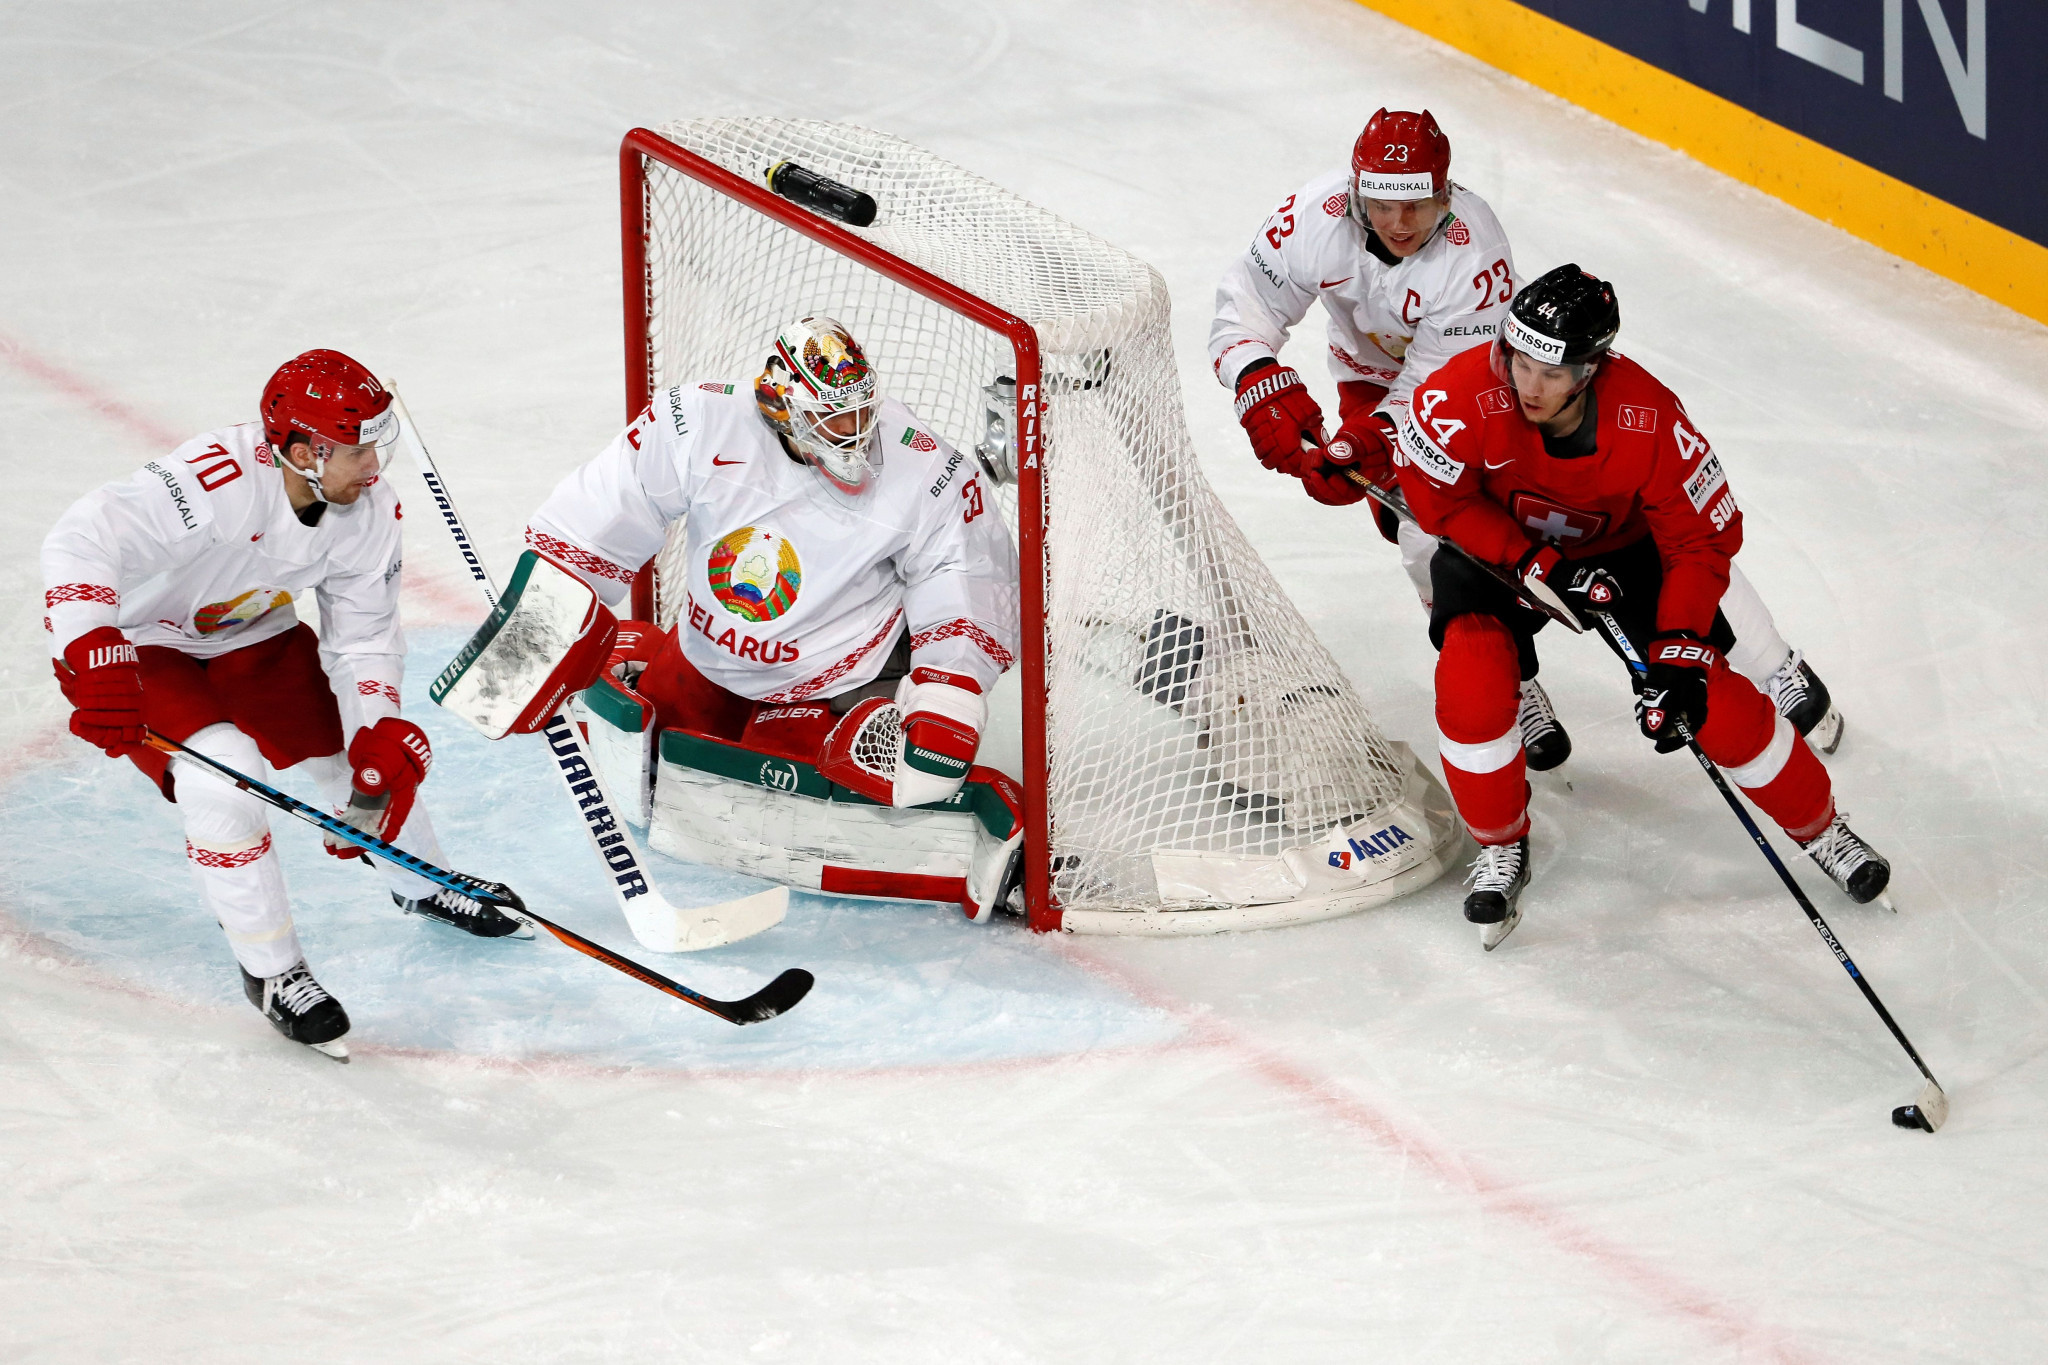 Tickets for the 2021 IIHF Men's World Championships in Belarus and Latvia could go on sale in September ©Getty Images